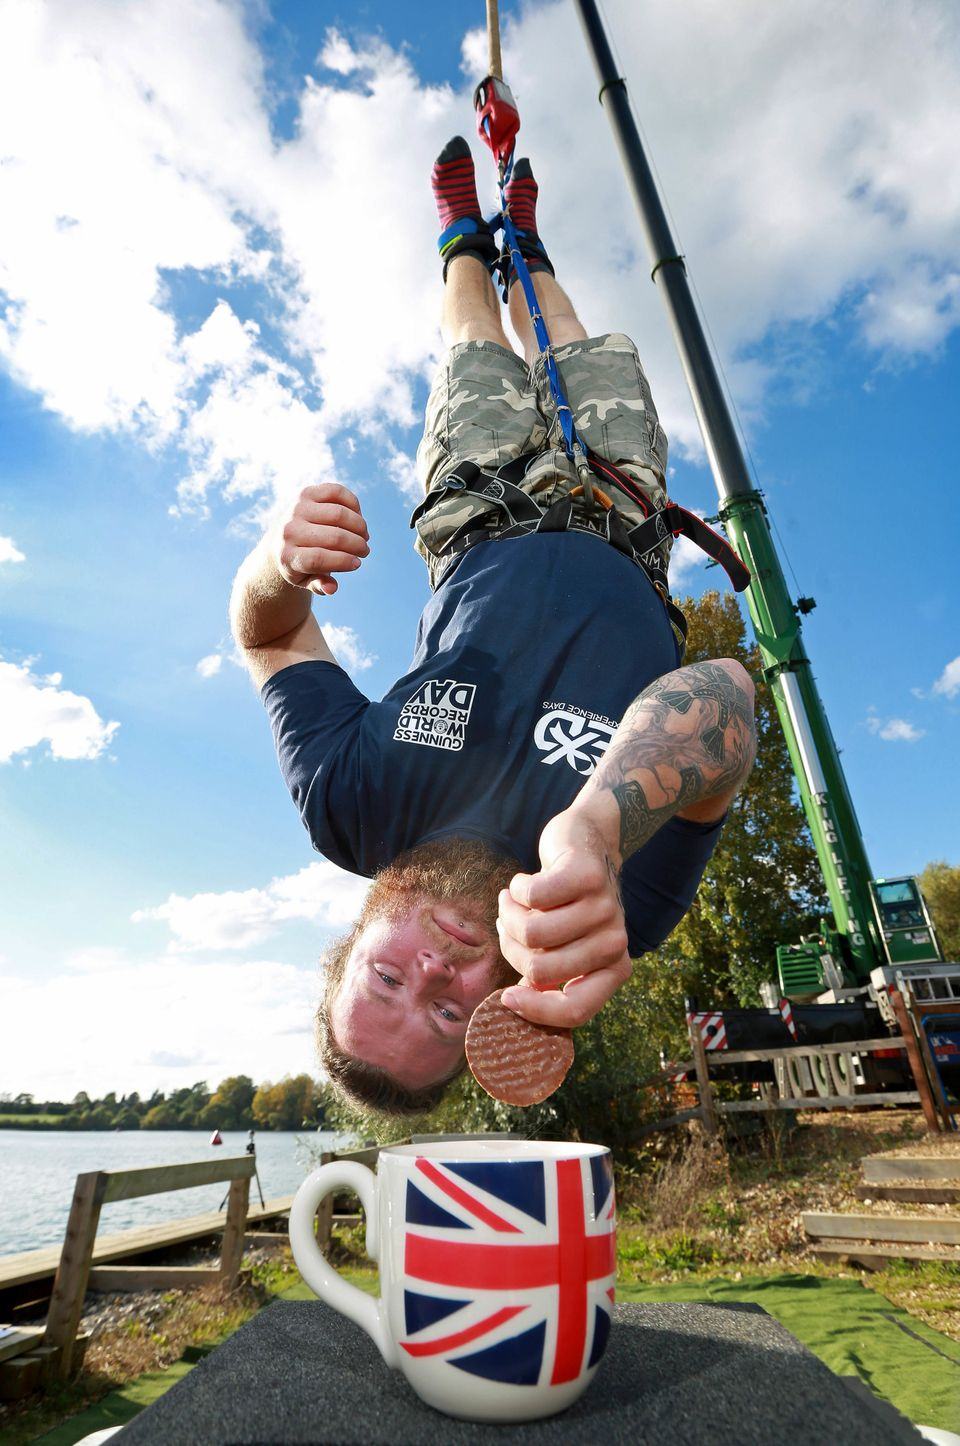 Brit Simon Berry fell 240 feet, 10 inches in order to dunk a biscuit.